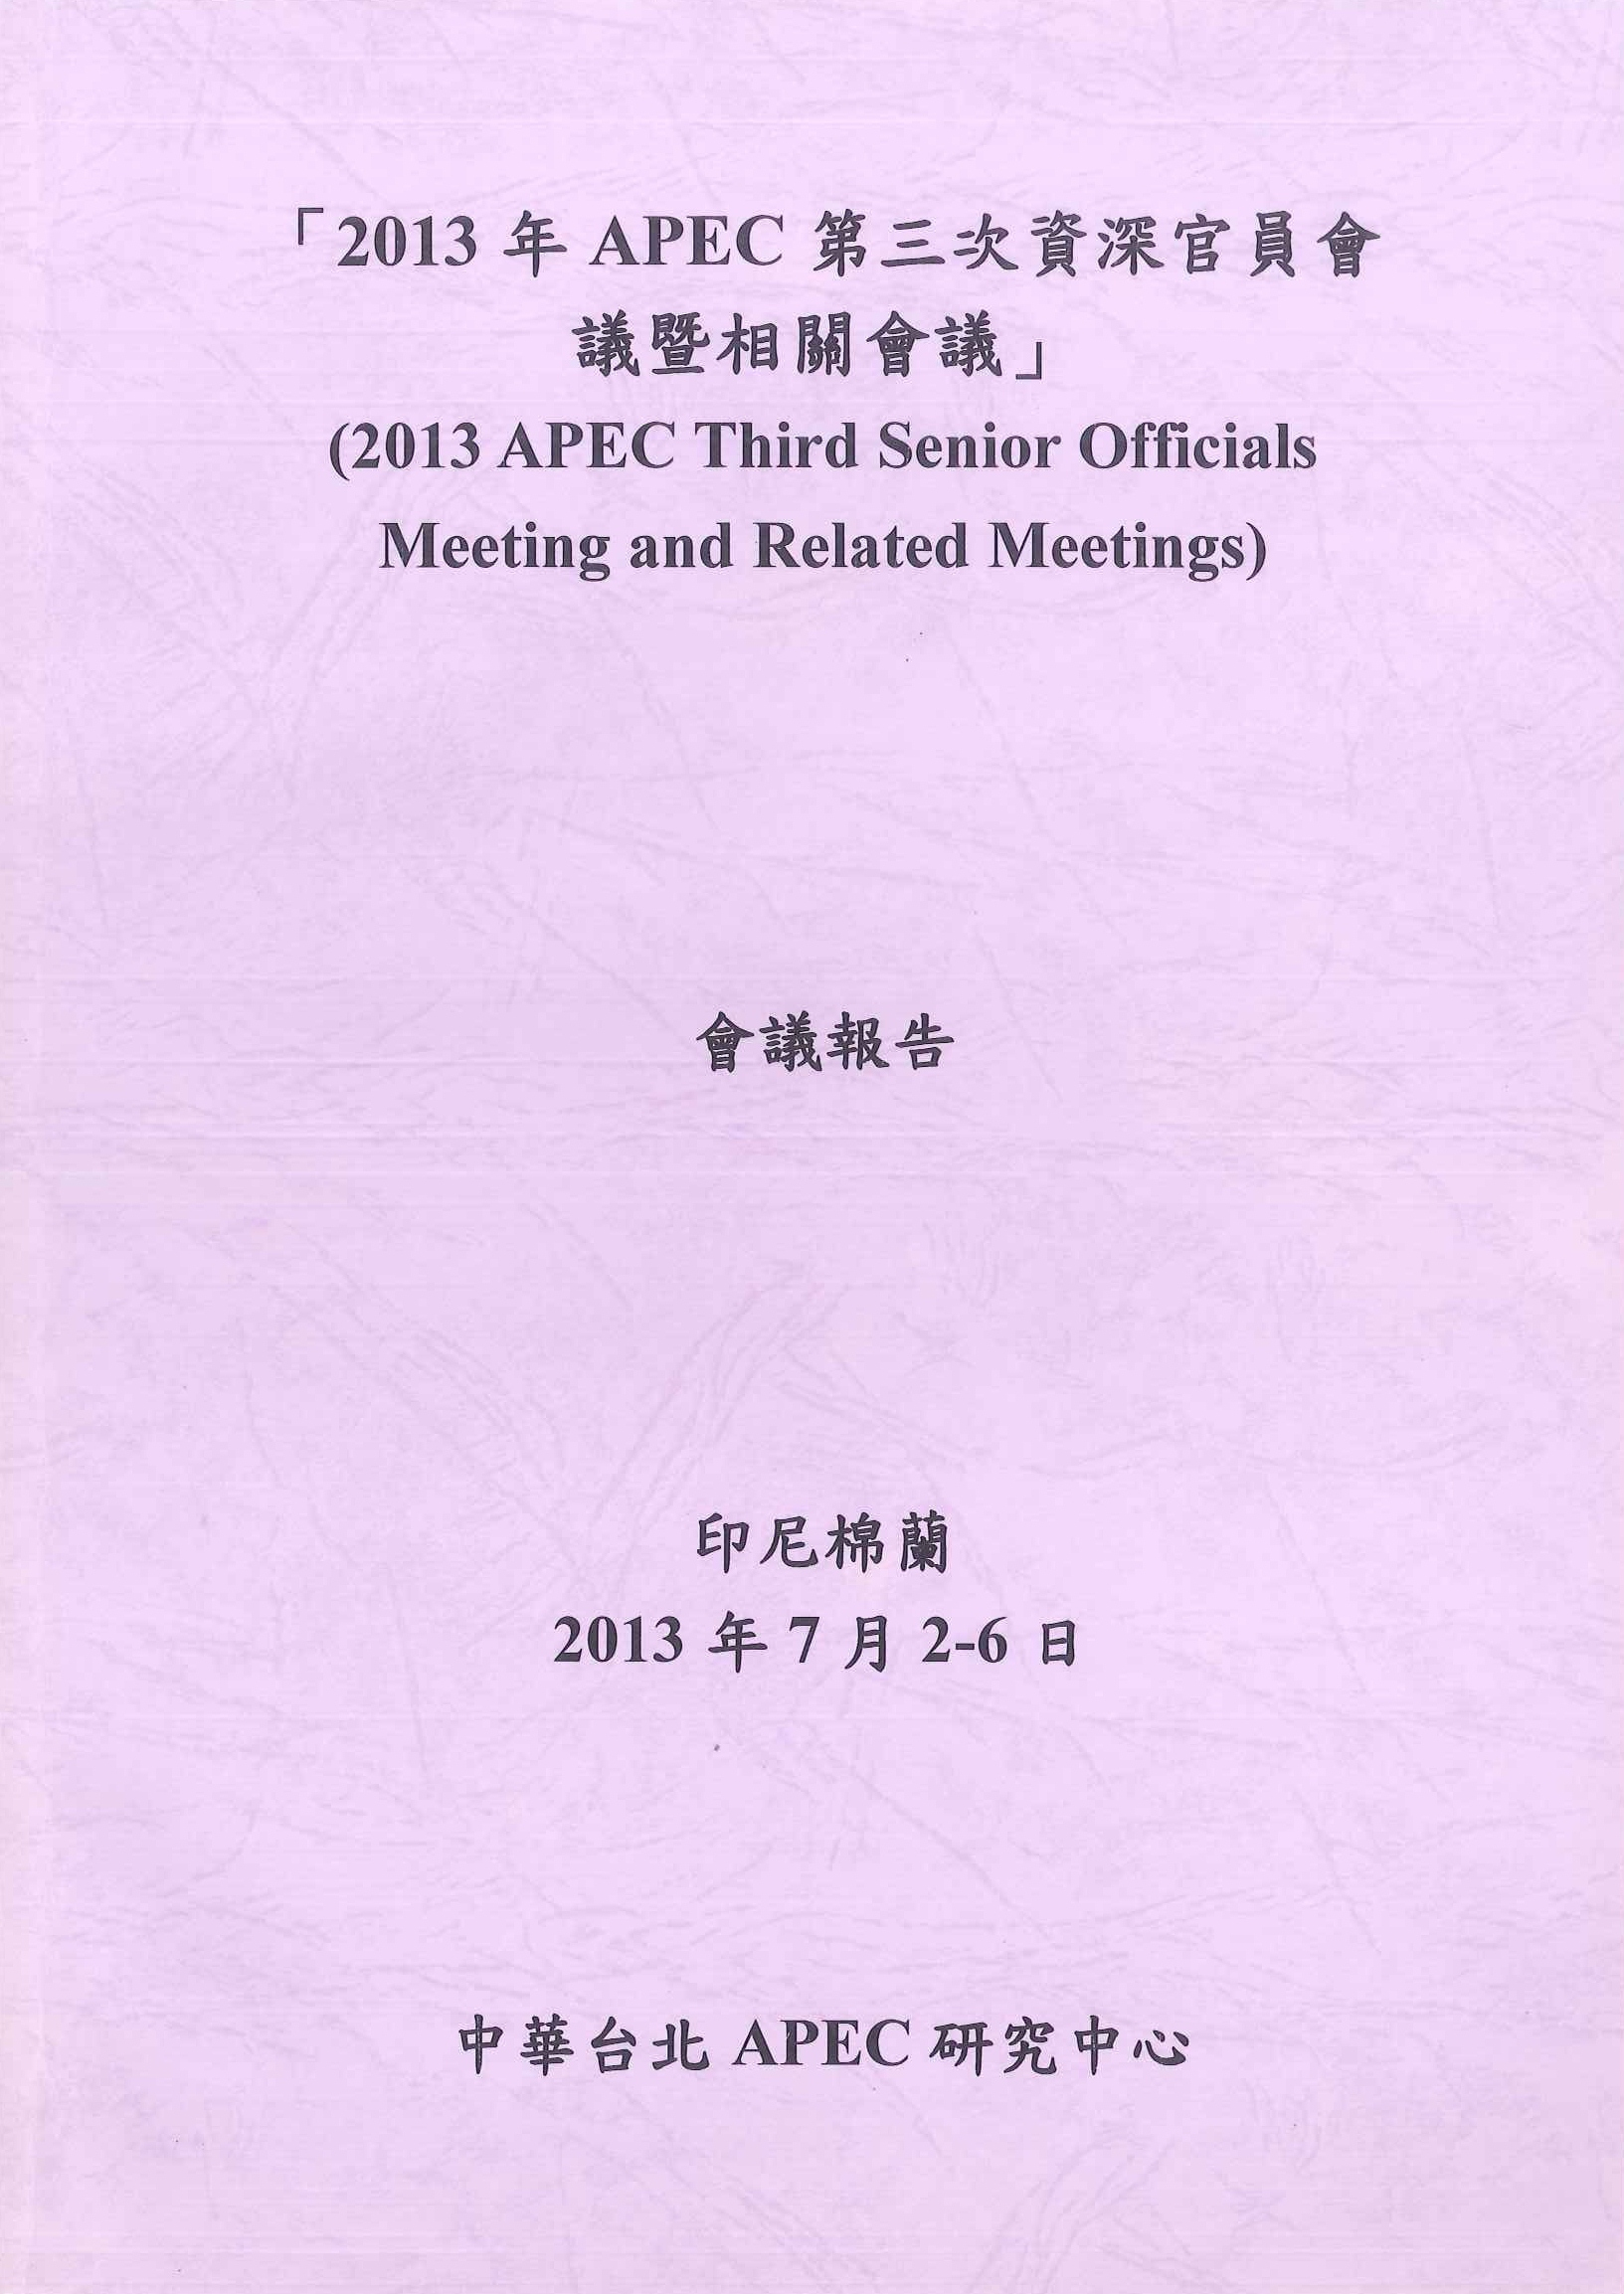 2013年APEC第三次資深官員會議暨相關會議會議報告=2013 APEC thied senior officials meeting and related meetings